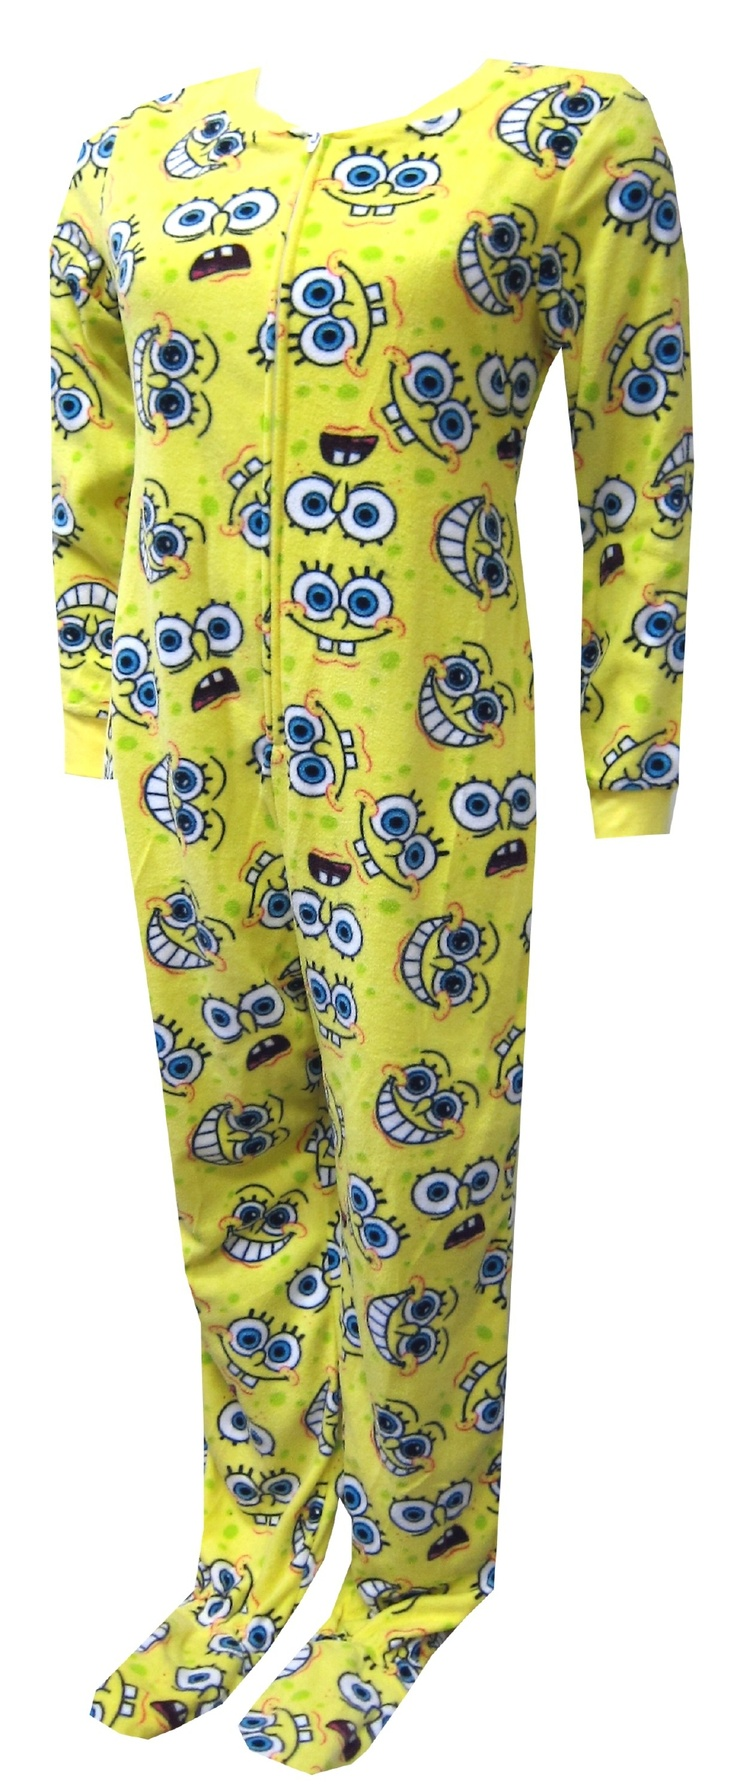 These pajama sets for women feature the many faces of SpongeBob on yellow micro polar fleece. These one piece footie pajamas have yellow ribbed cuffs at the wrist and have gripper bottoms. Machine washable and easy care. Junior Cut.